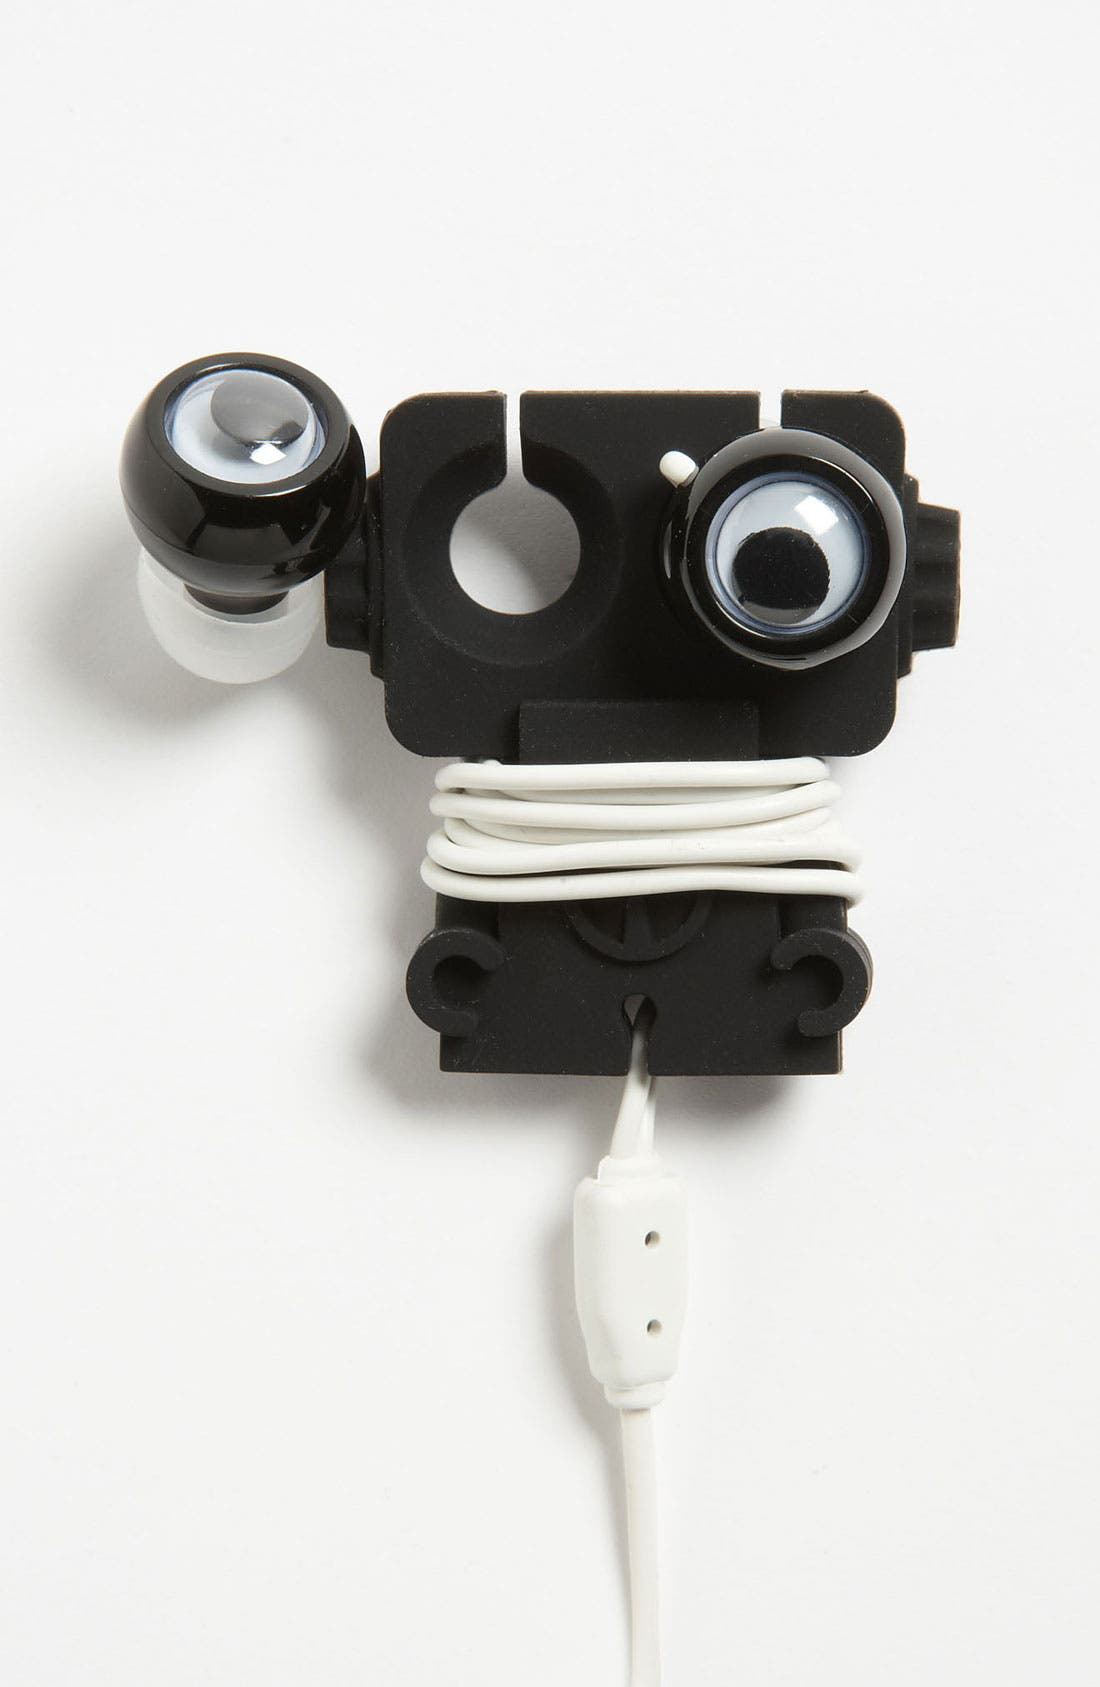 Alternate Image 1 Selected - Kikkerland Design 'Robo Buddy' Earbuds & Cord Wrap